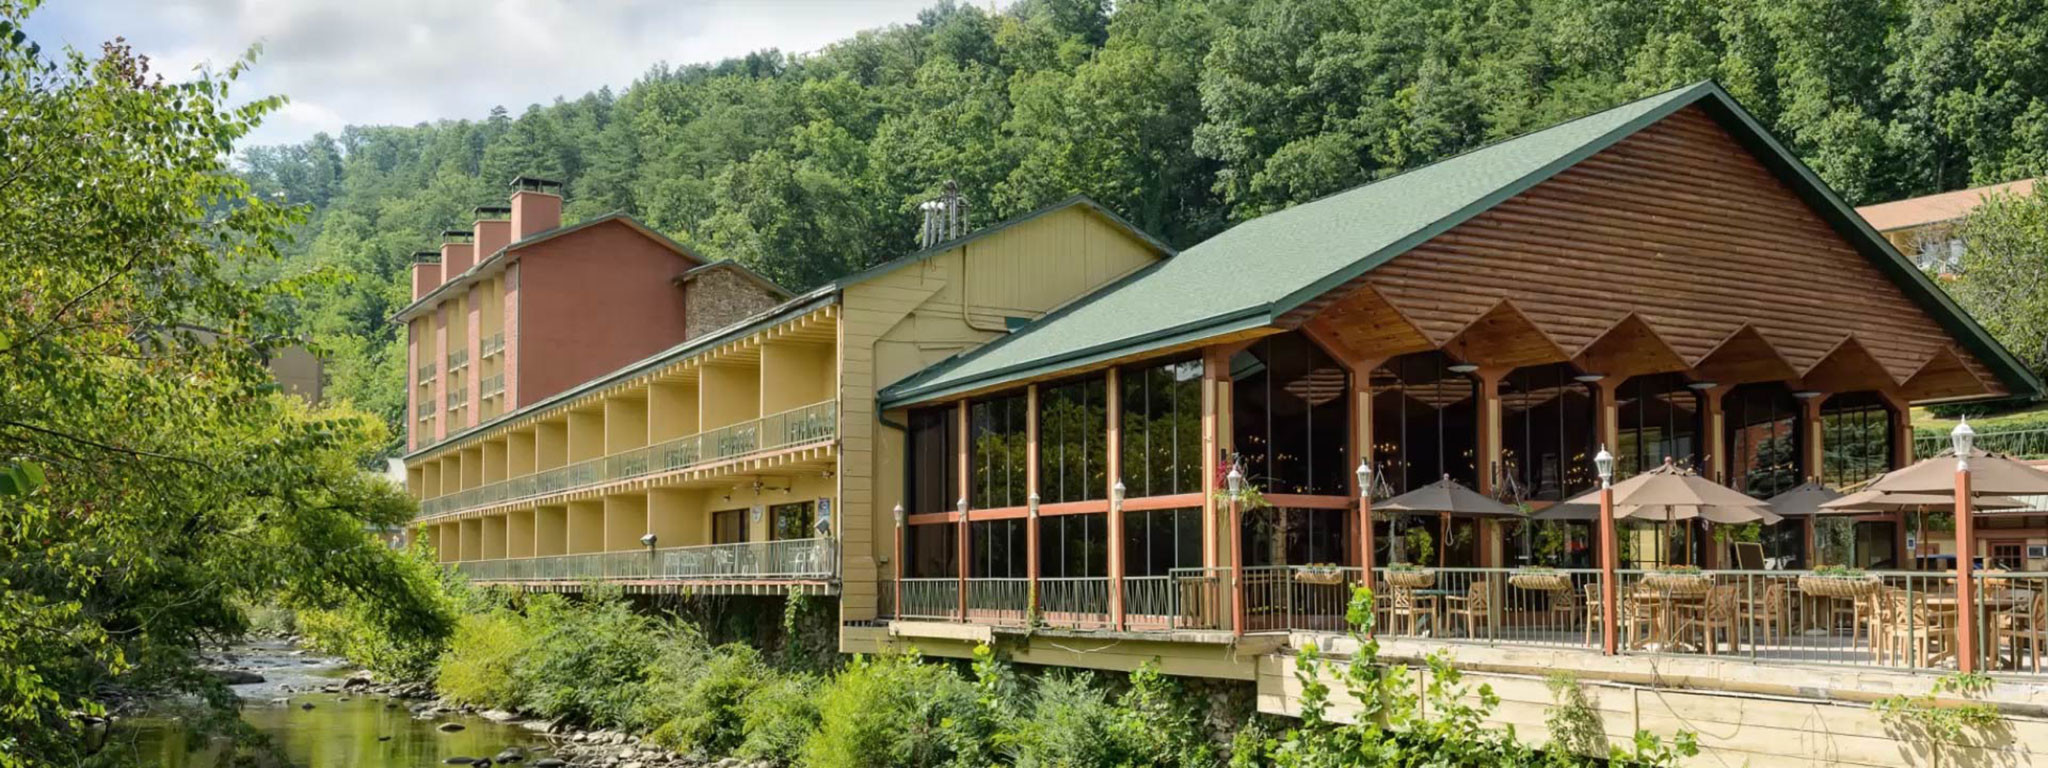 Hotels Near Gatlinburg Convention Center | River Terrace ... on